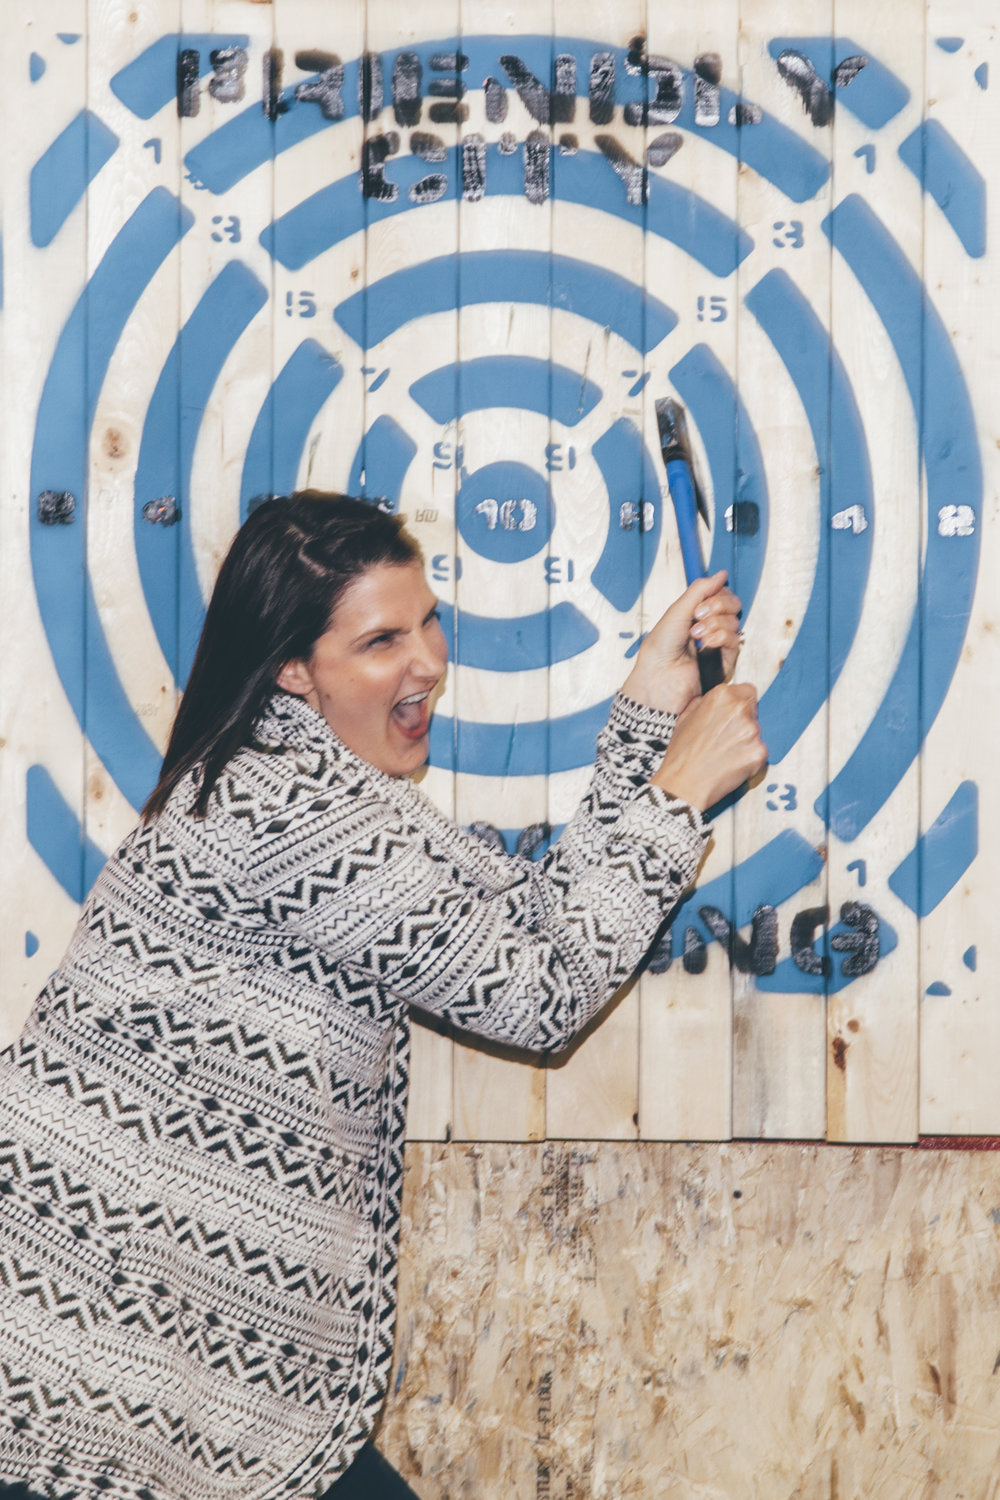 axe throwing-14.jpg